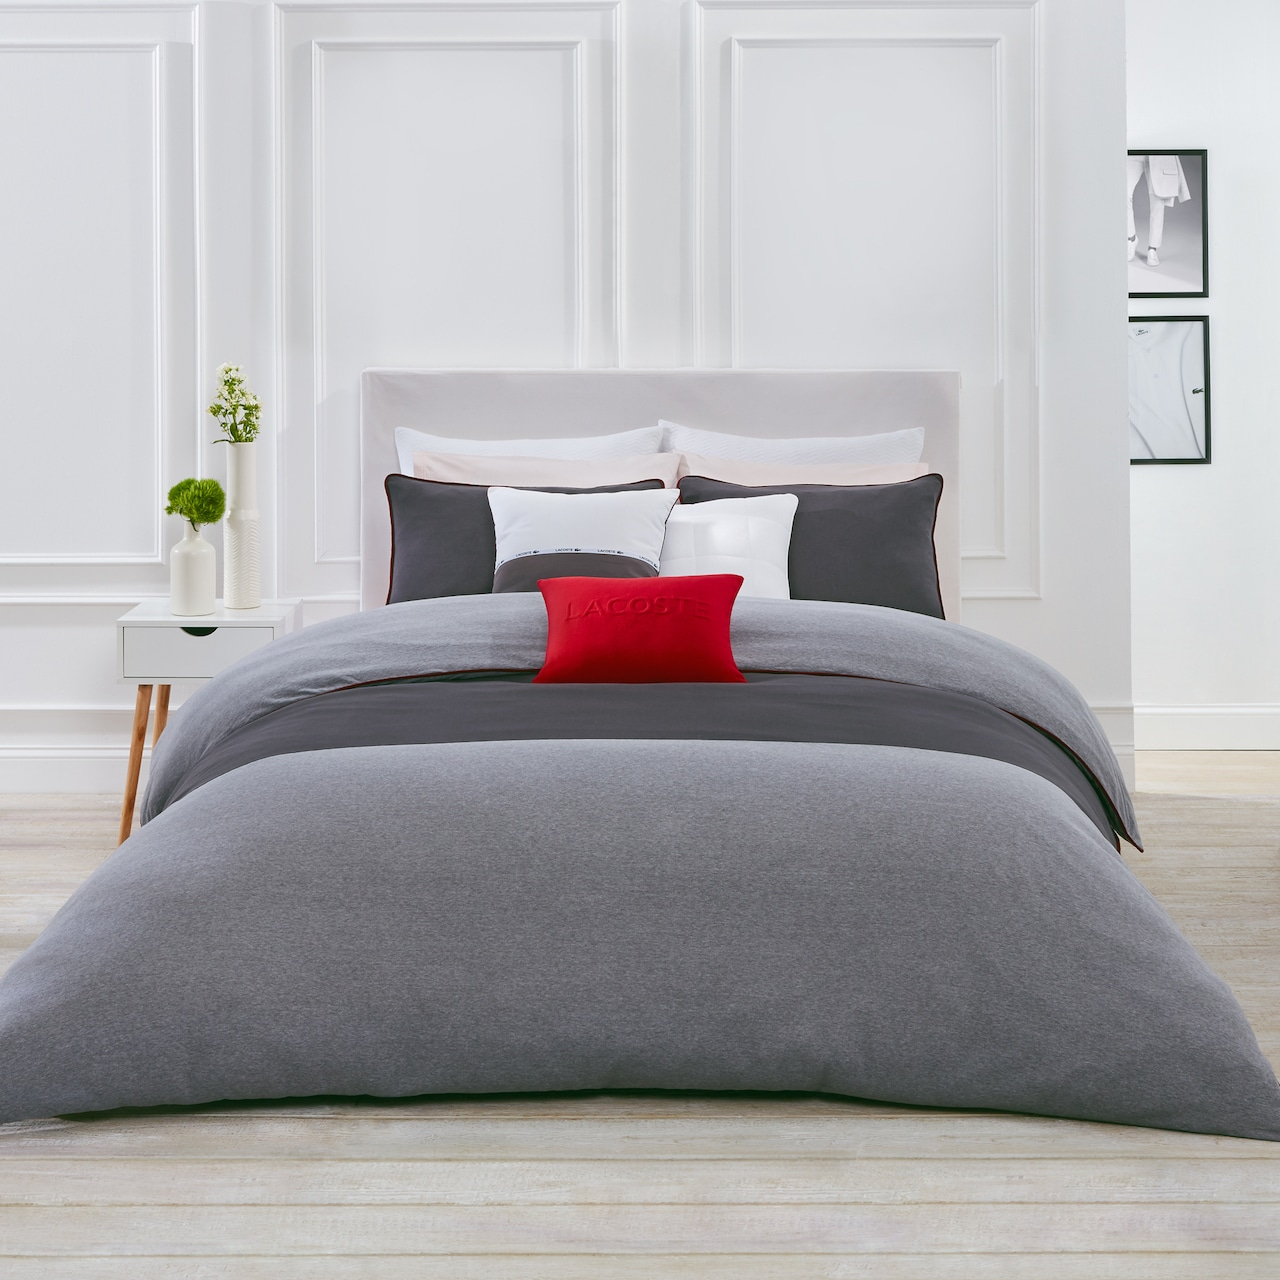 and s grenelle bedding collections sets duvet comforter lacoste bath bed cover macy pin